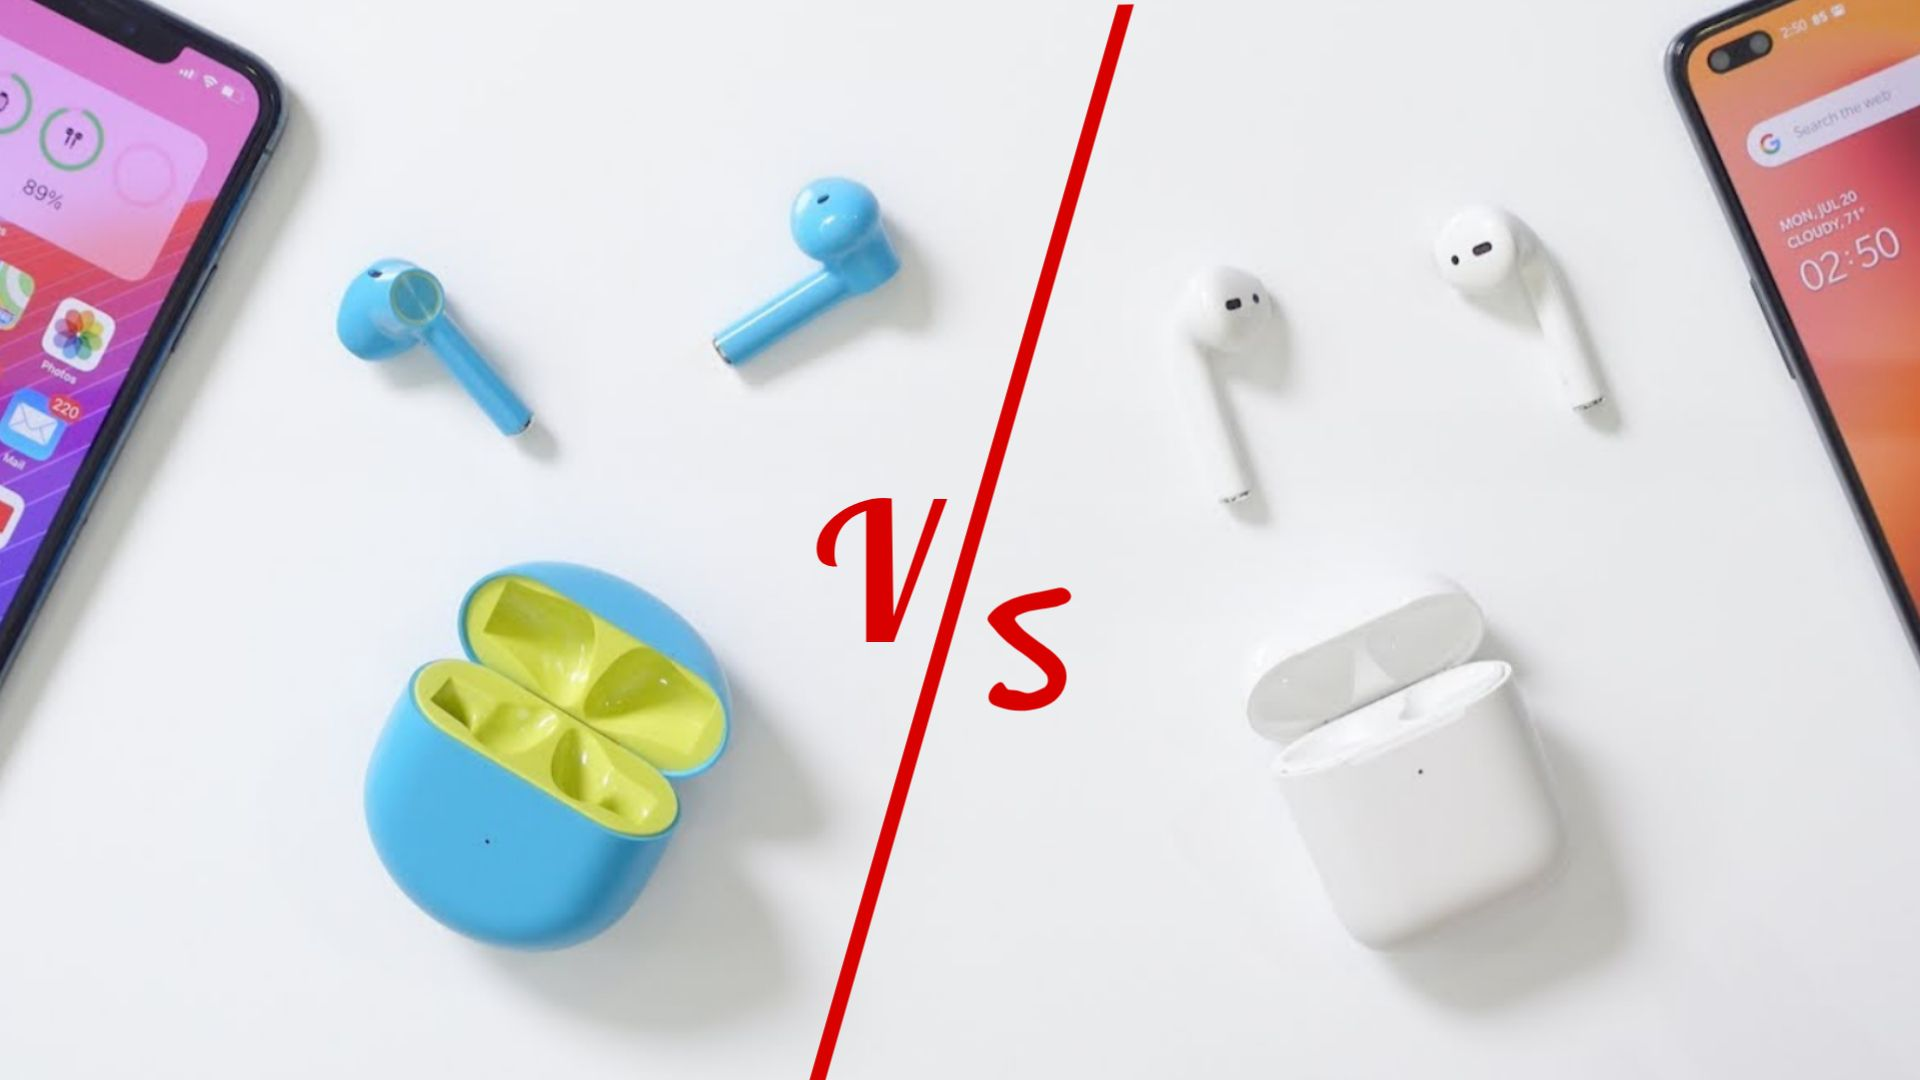 OnePlus Buds Apple AirPods